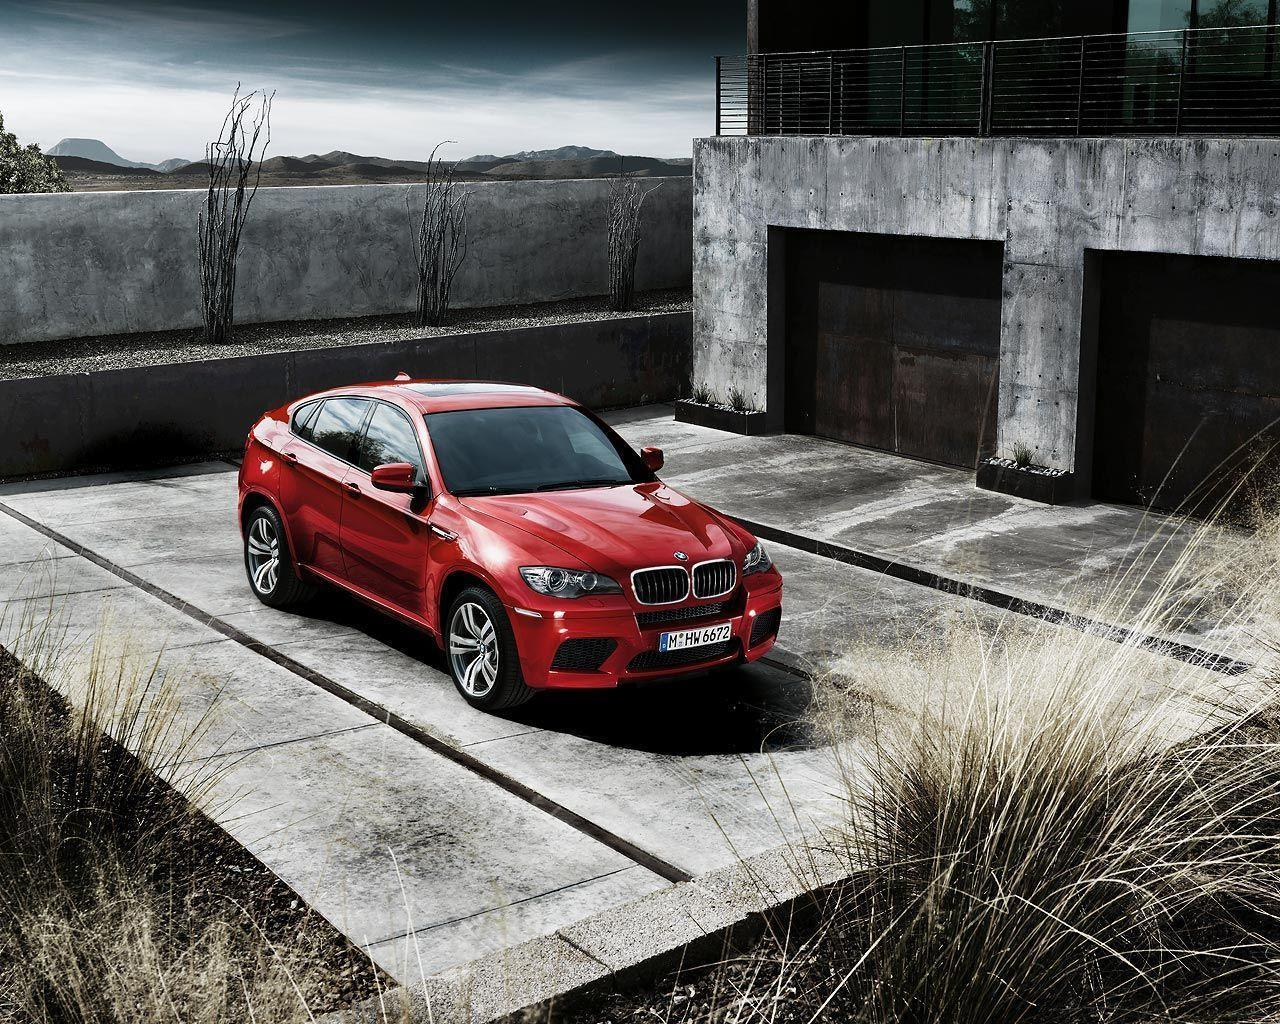 BMW X6 Wallpapers - Wallpaper Cave